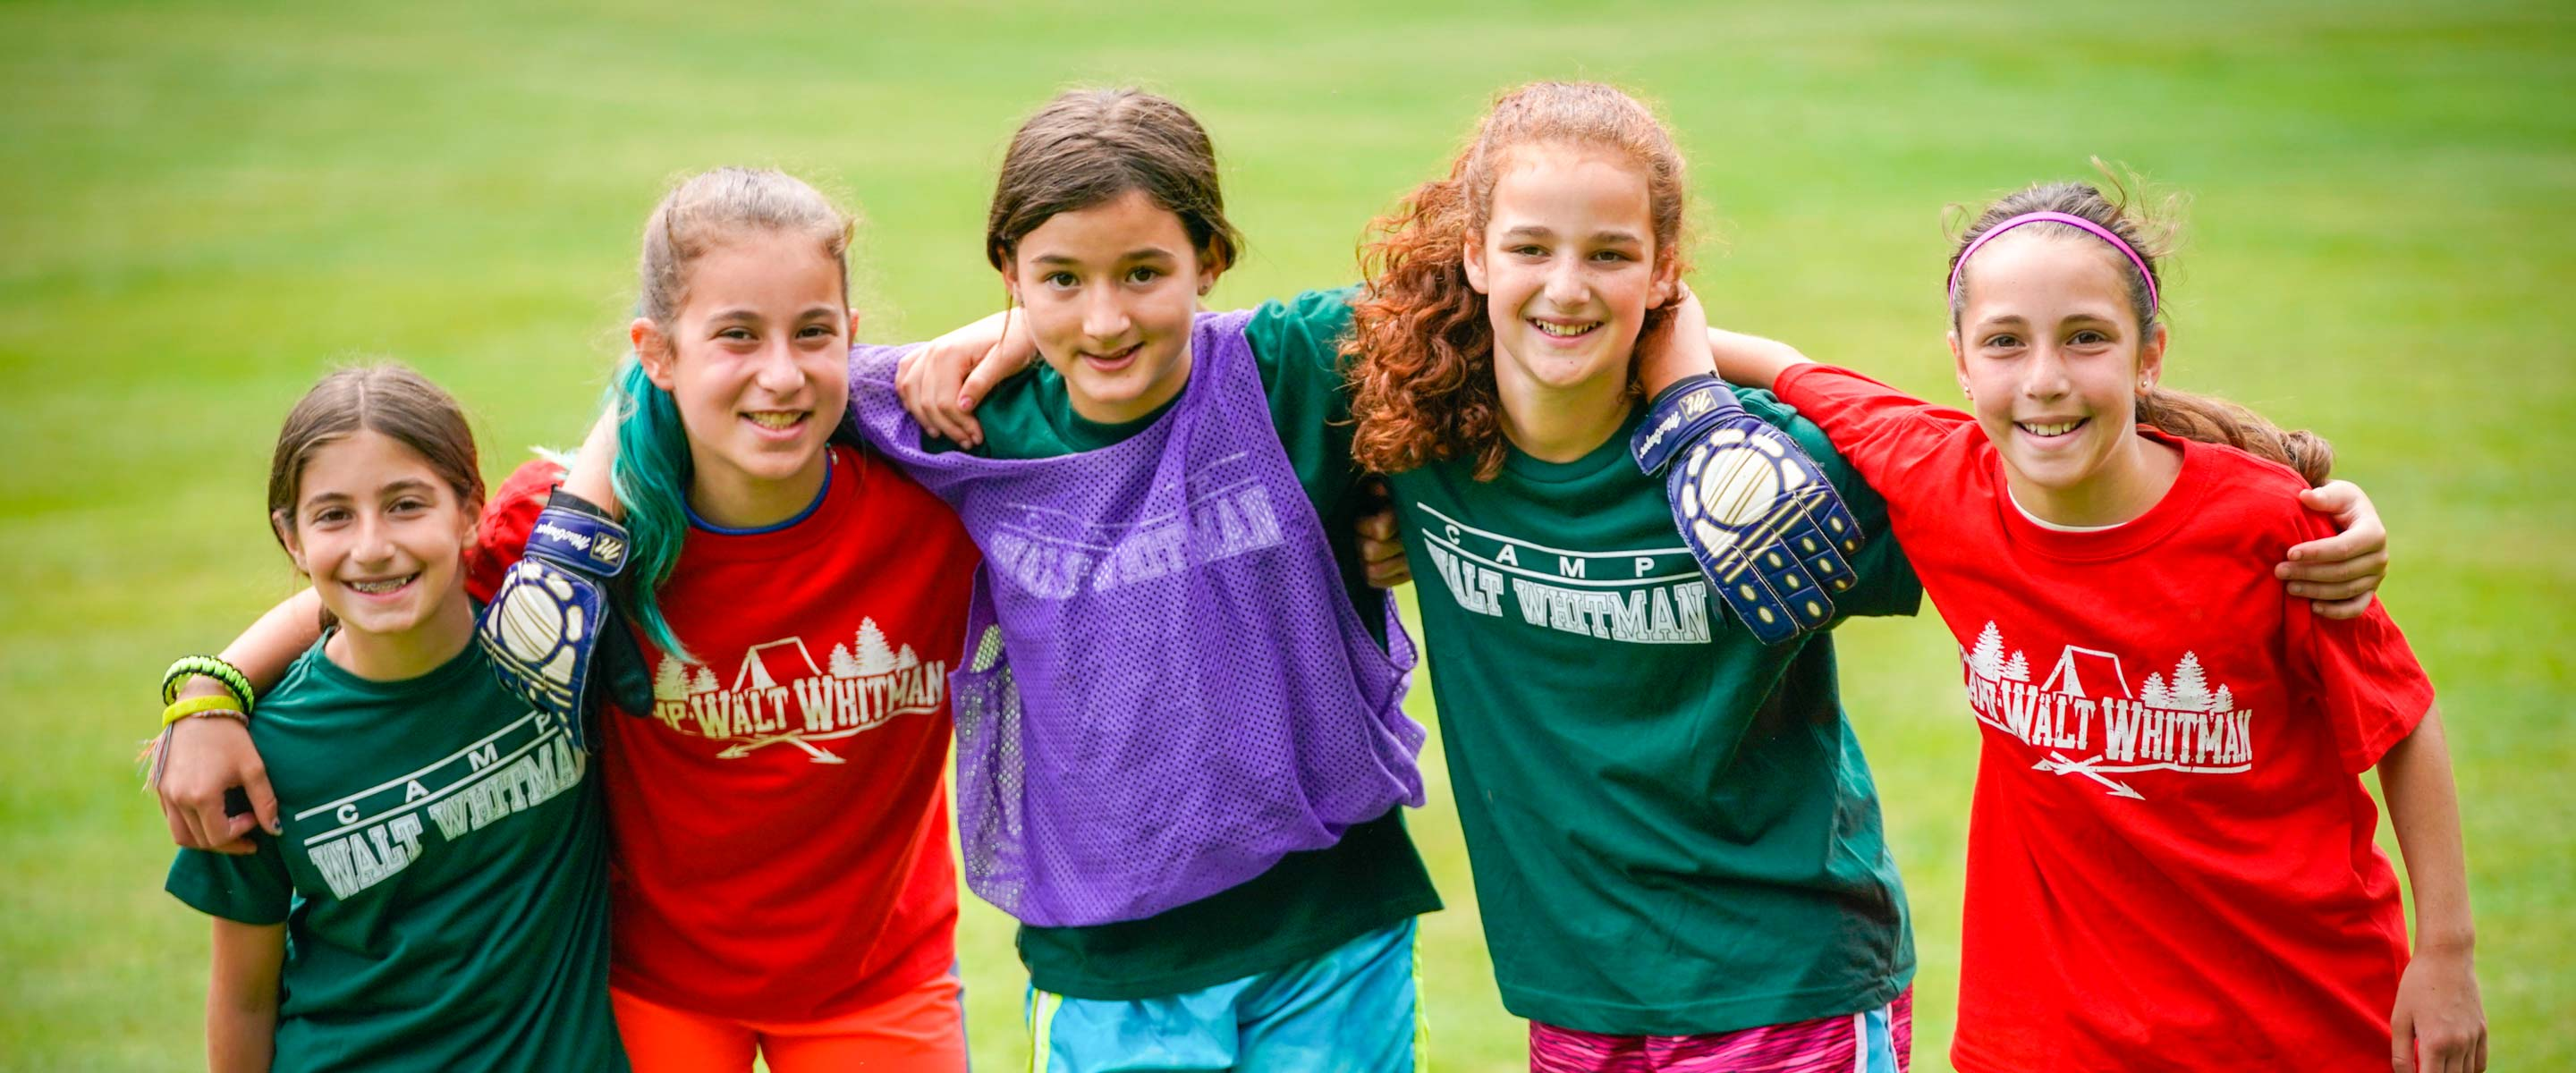 five young girls with arms around each other with soccer gear on